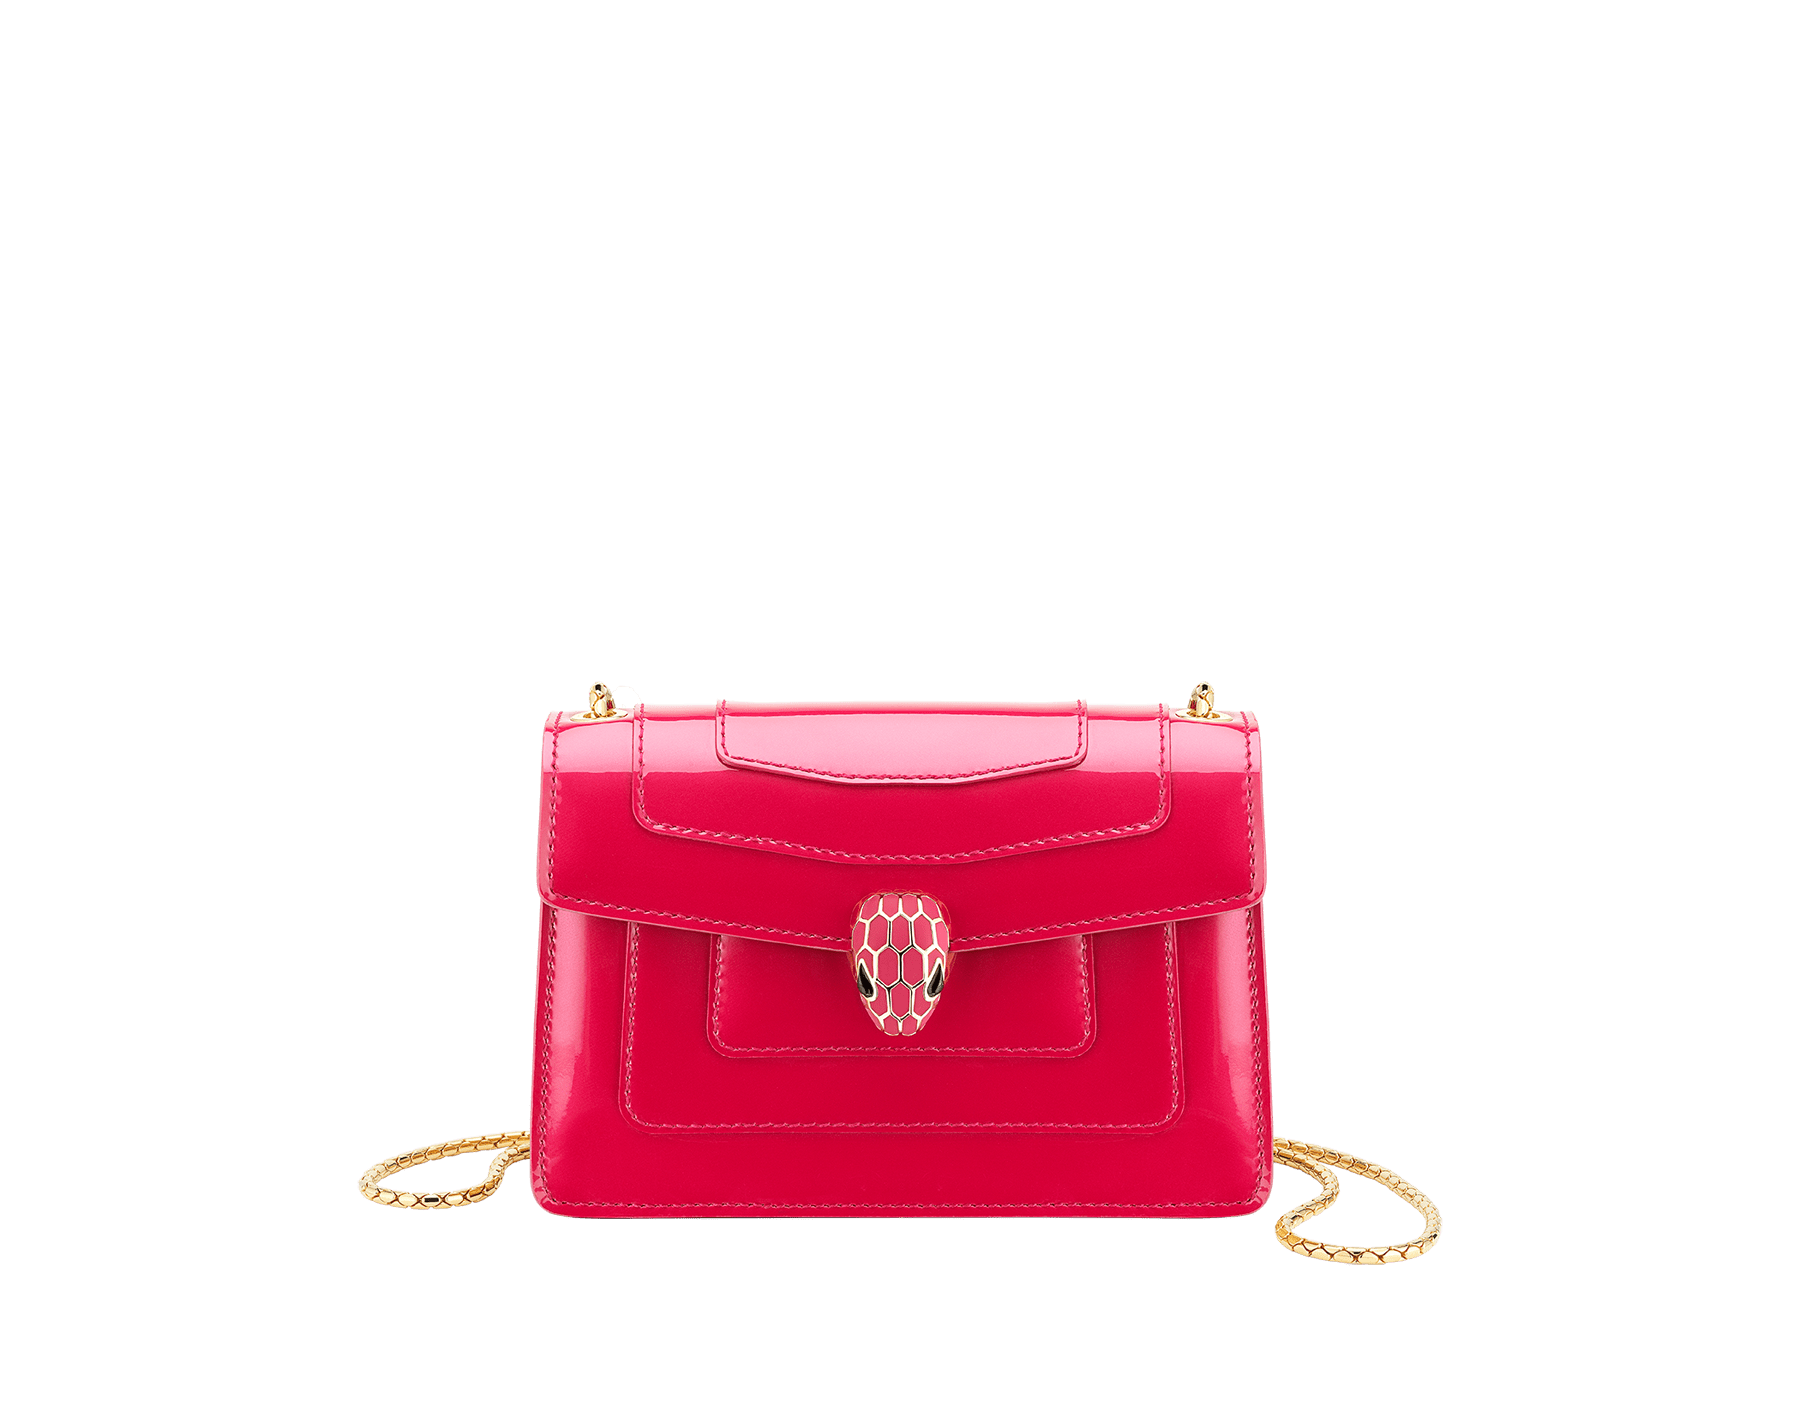 """Serpenti Forever"" crossbody mini bag in Magenta Spinel purple with a varnished and pearled effect, and black grosgrain inner lining. Gold-plated brass snakehead closure in full matte Magenta Spinel purple enamel, with black onyx eyes. Lunar New Year Special Edition. 986-VCL image 1"